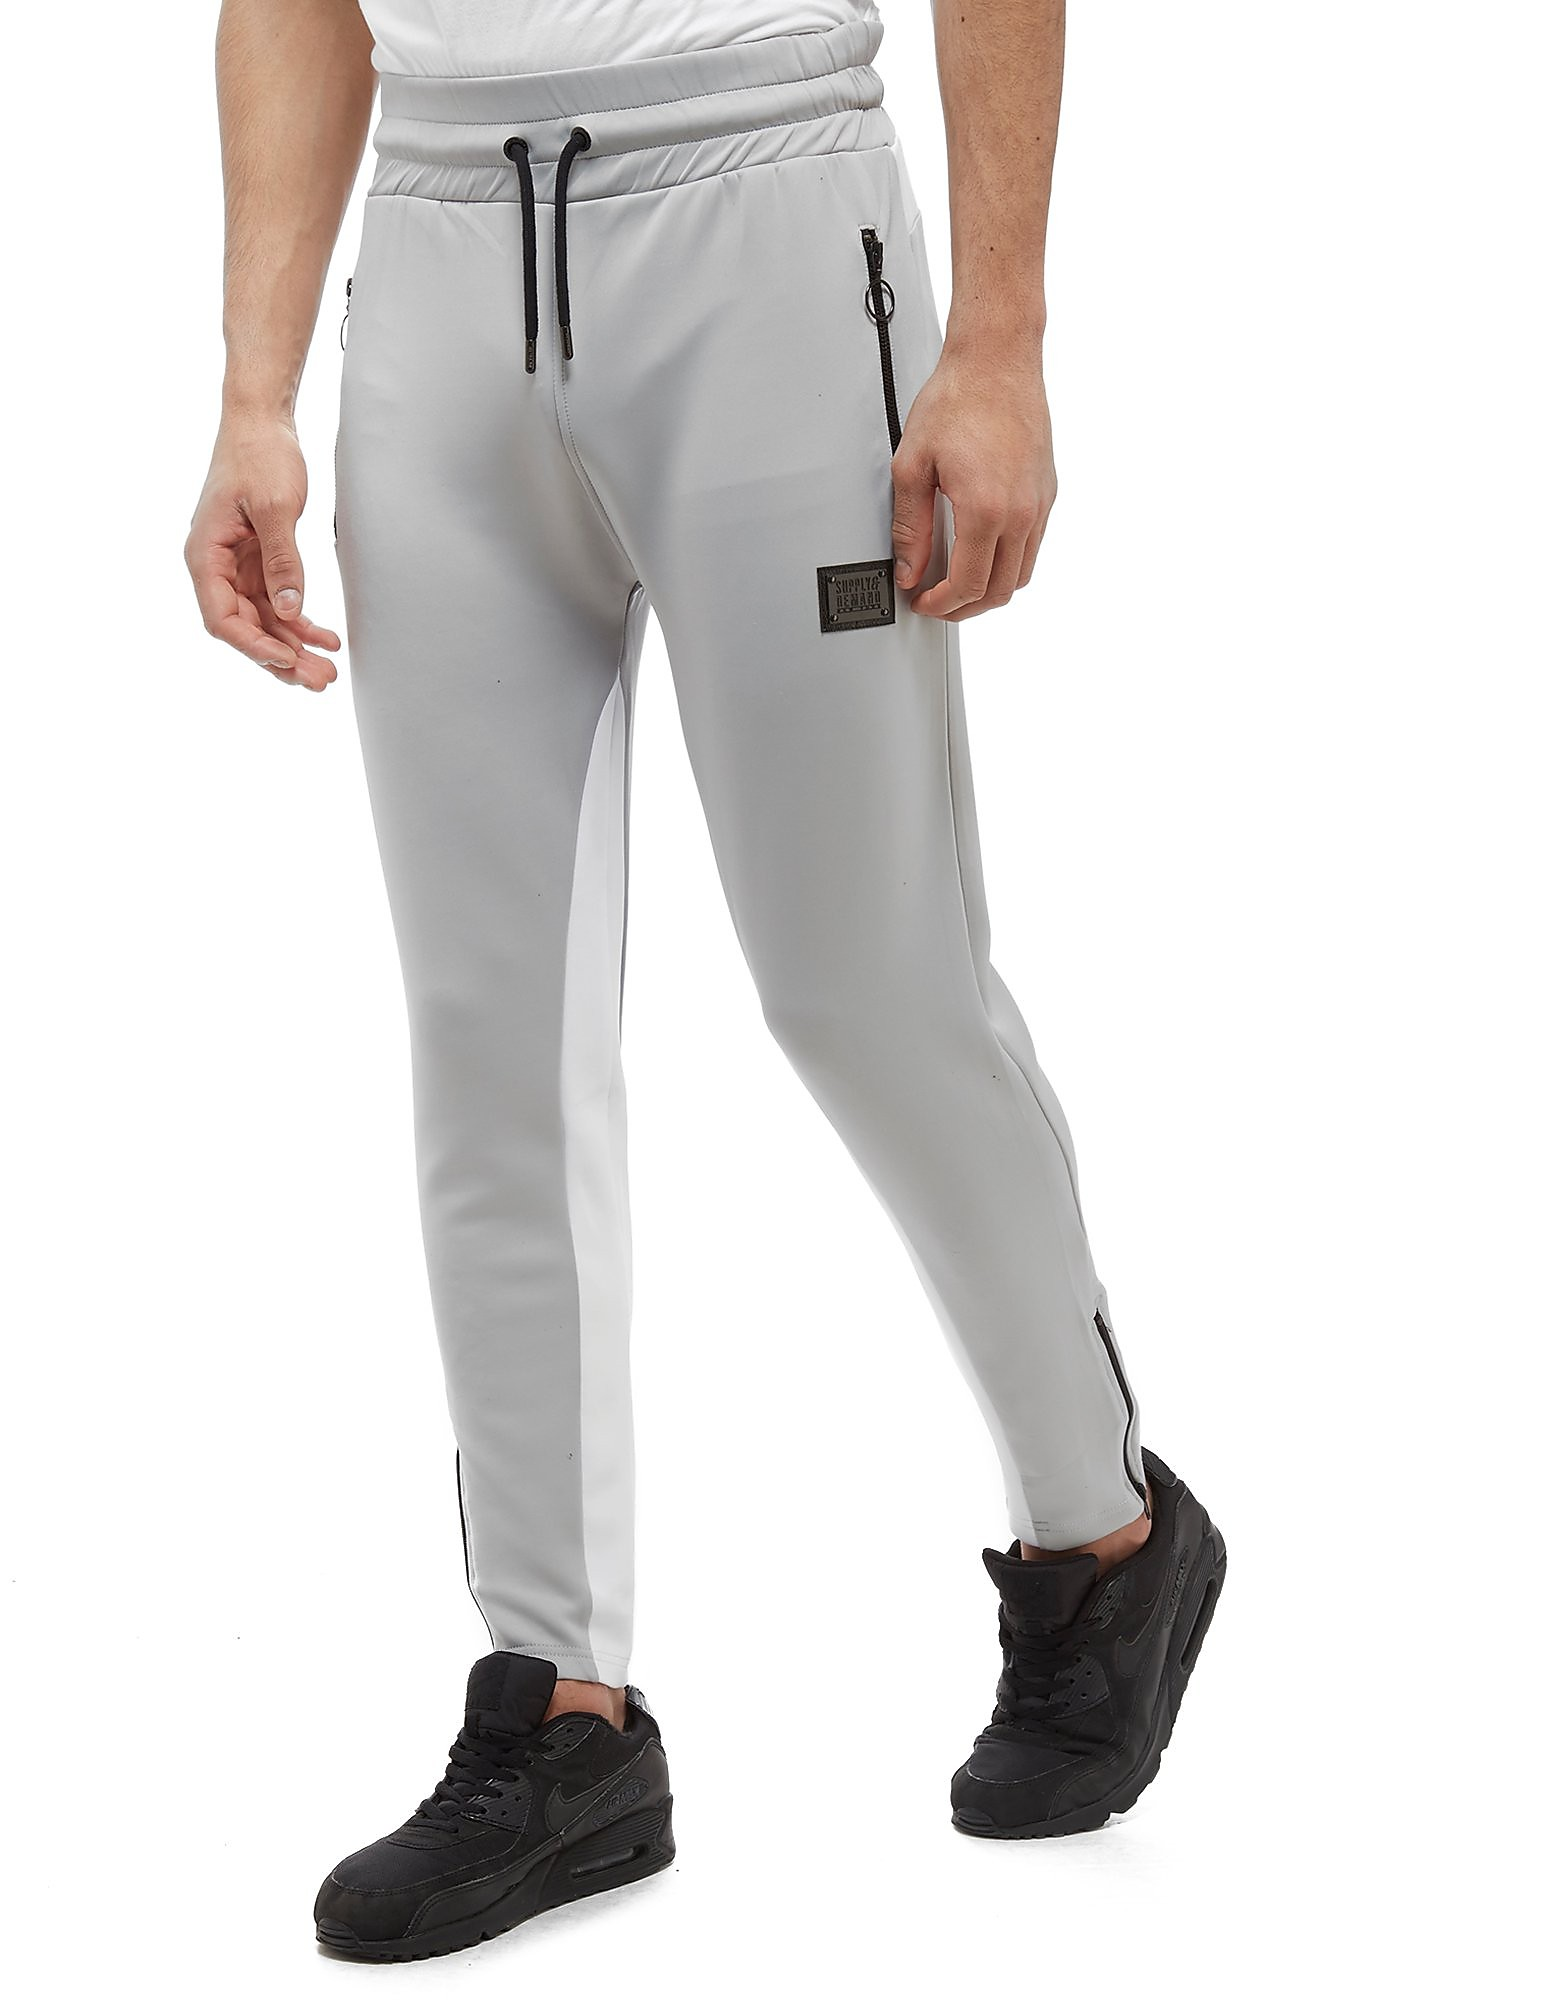 Supply & Demand Alaska Joggers